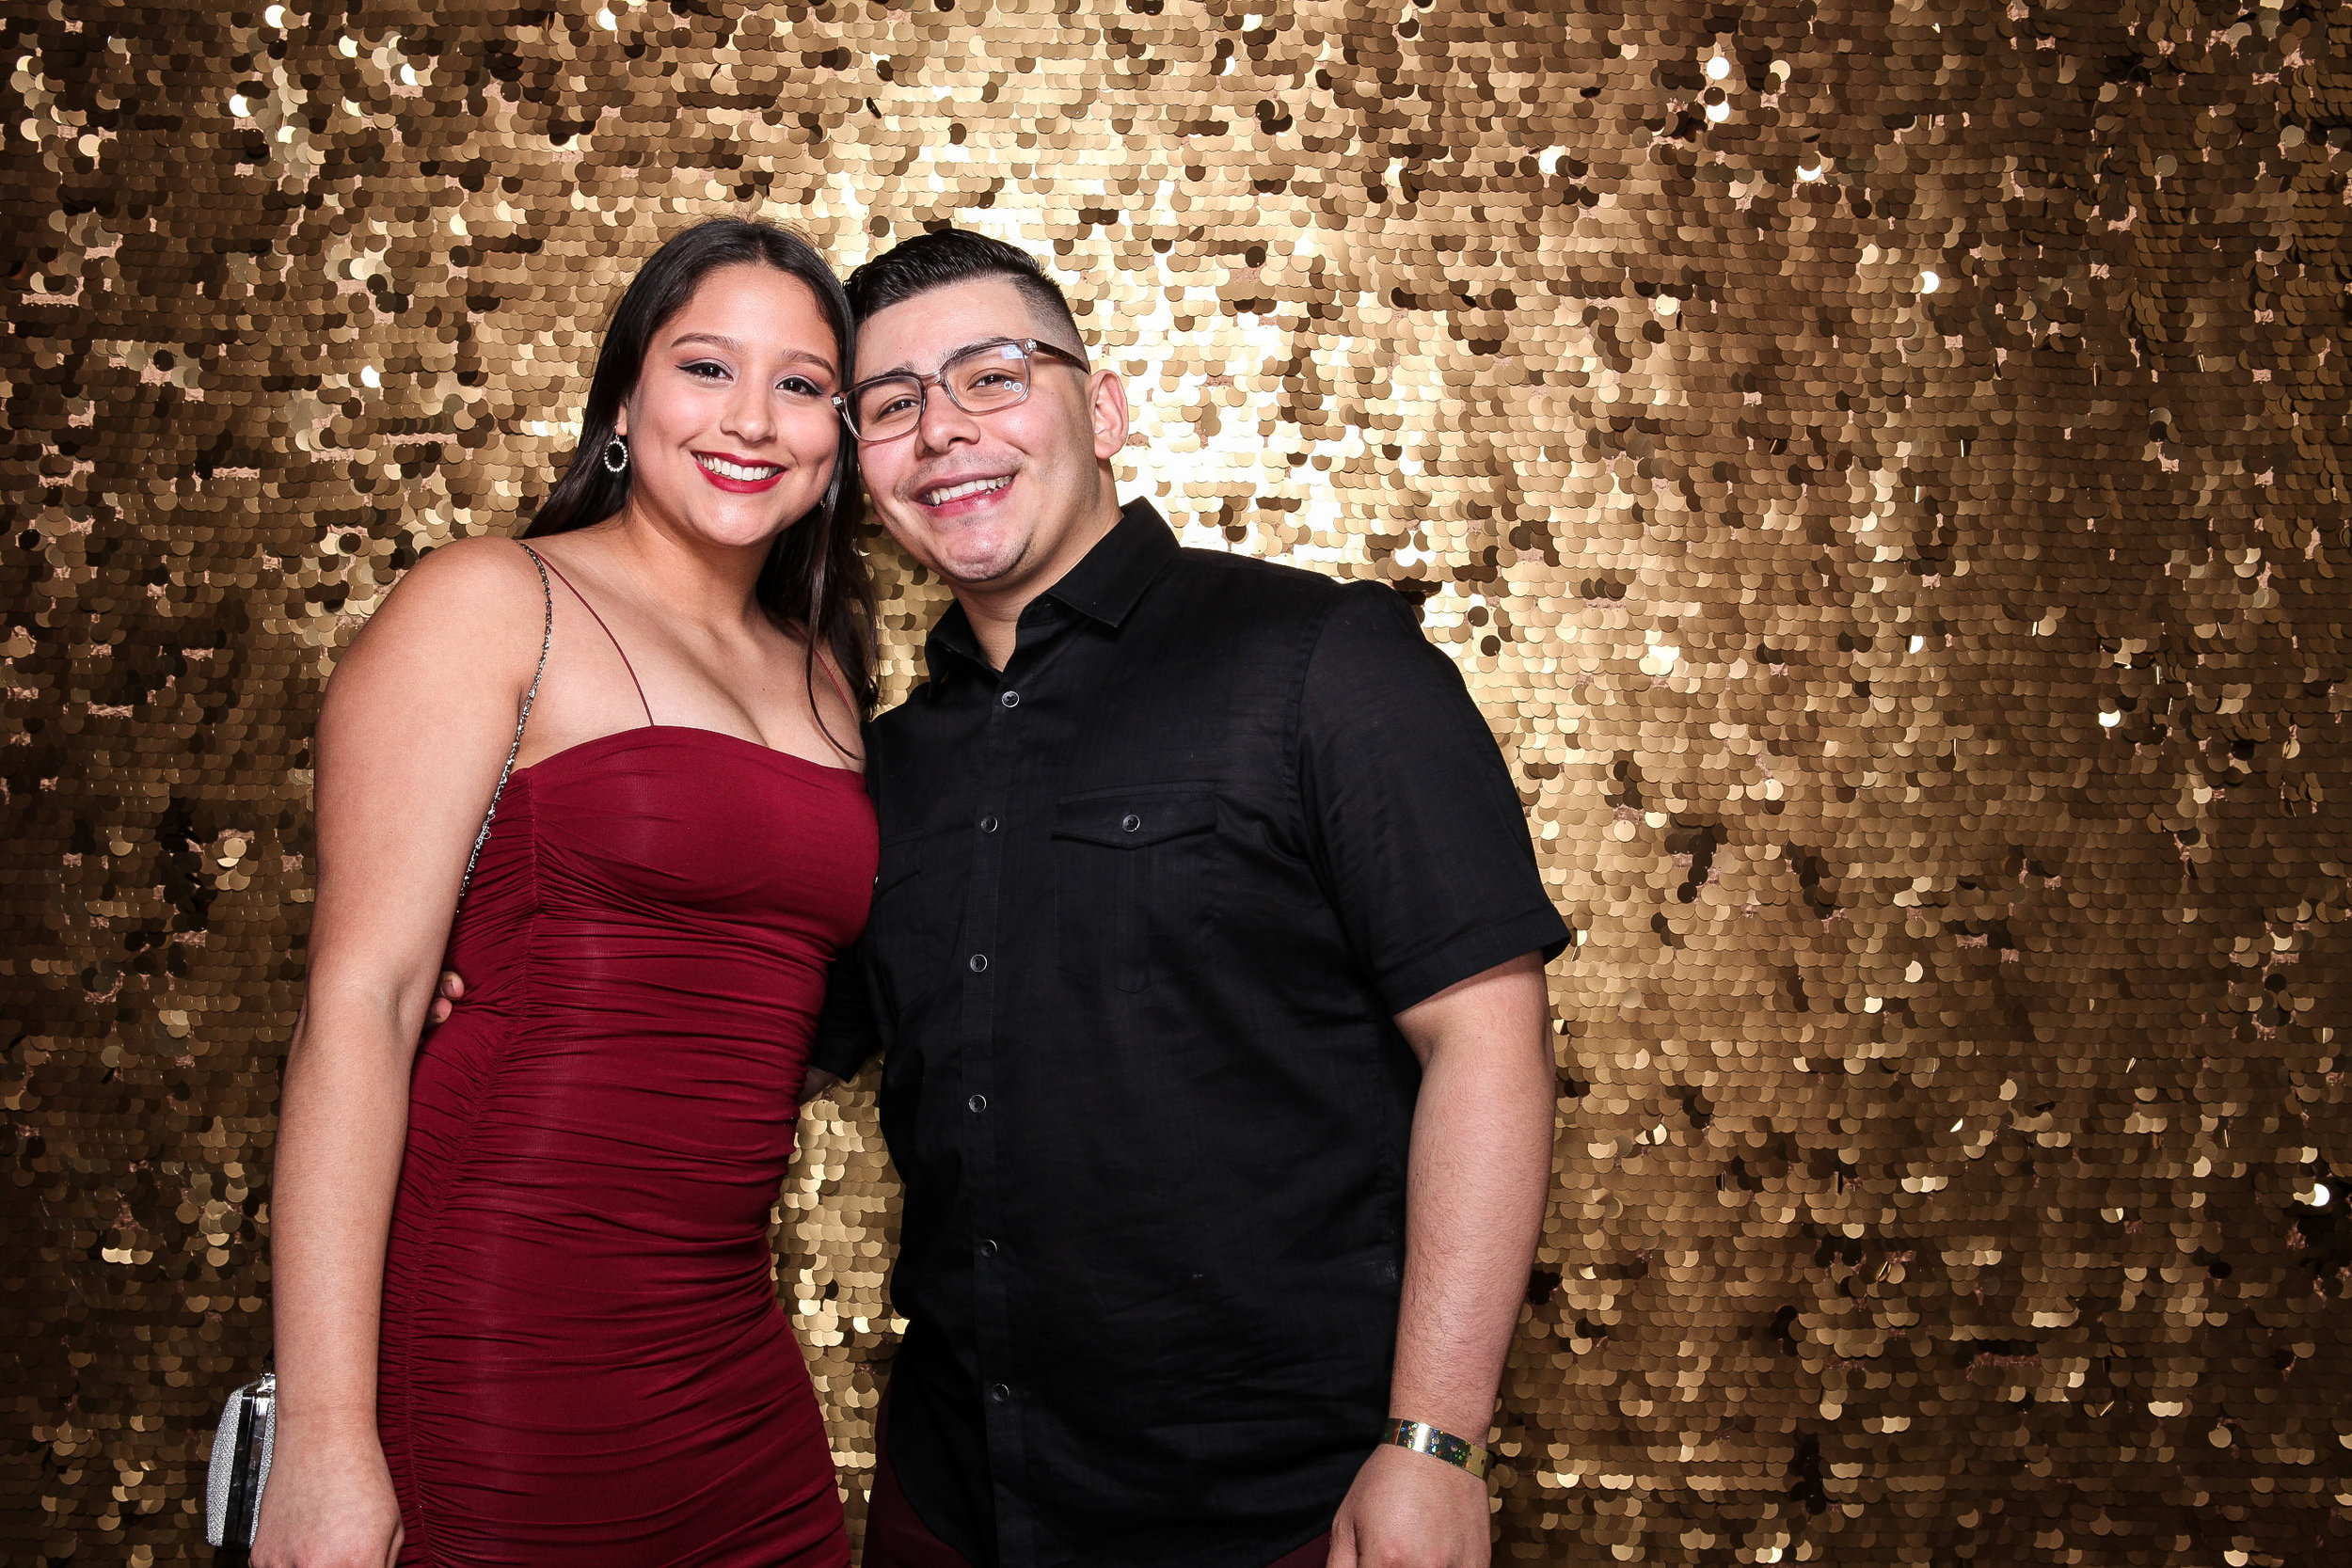 20190503_Adelphi_Senior_Formal-097.jpg